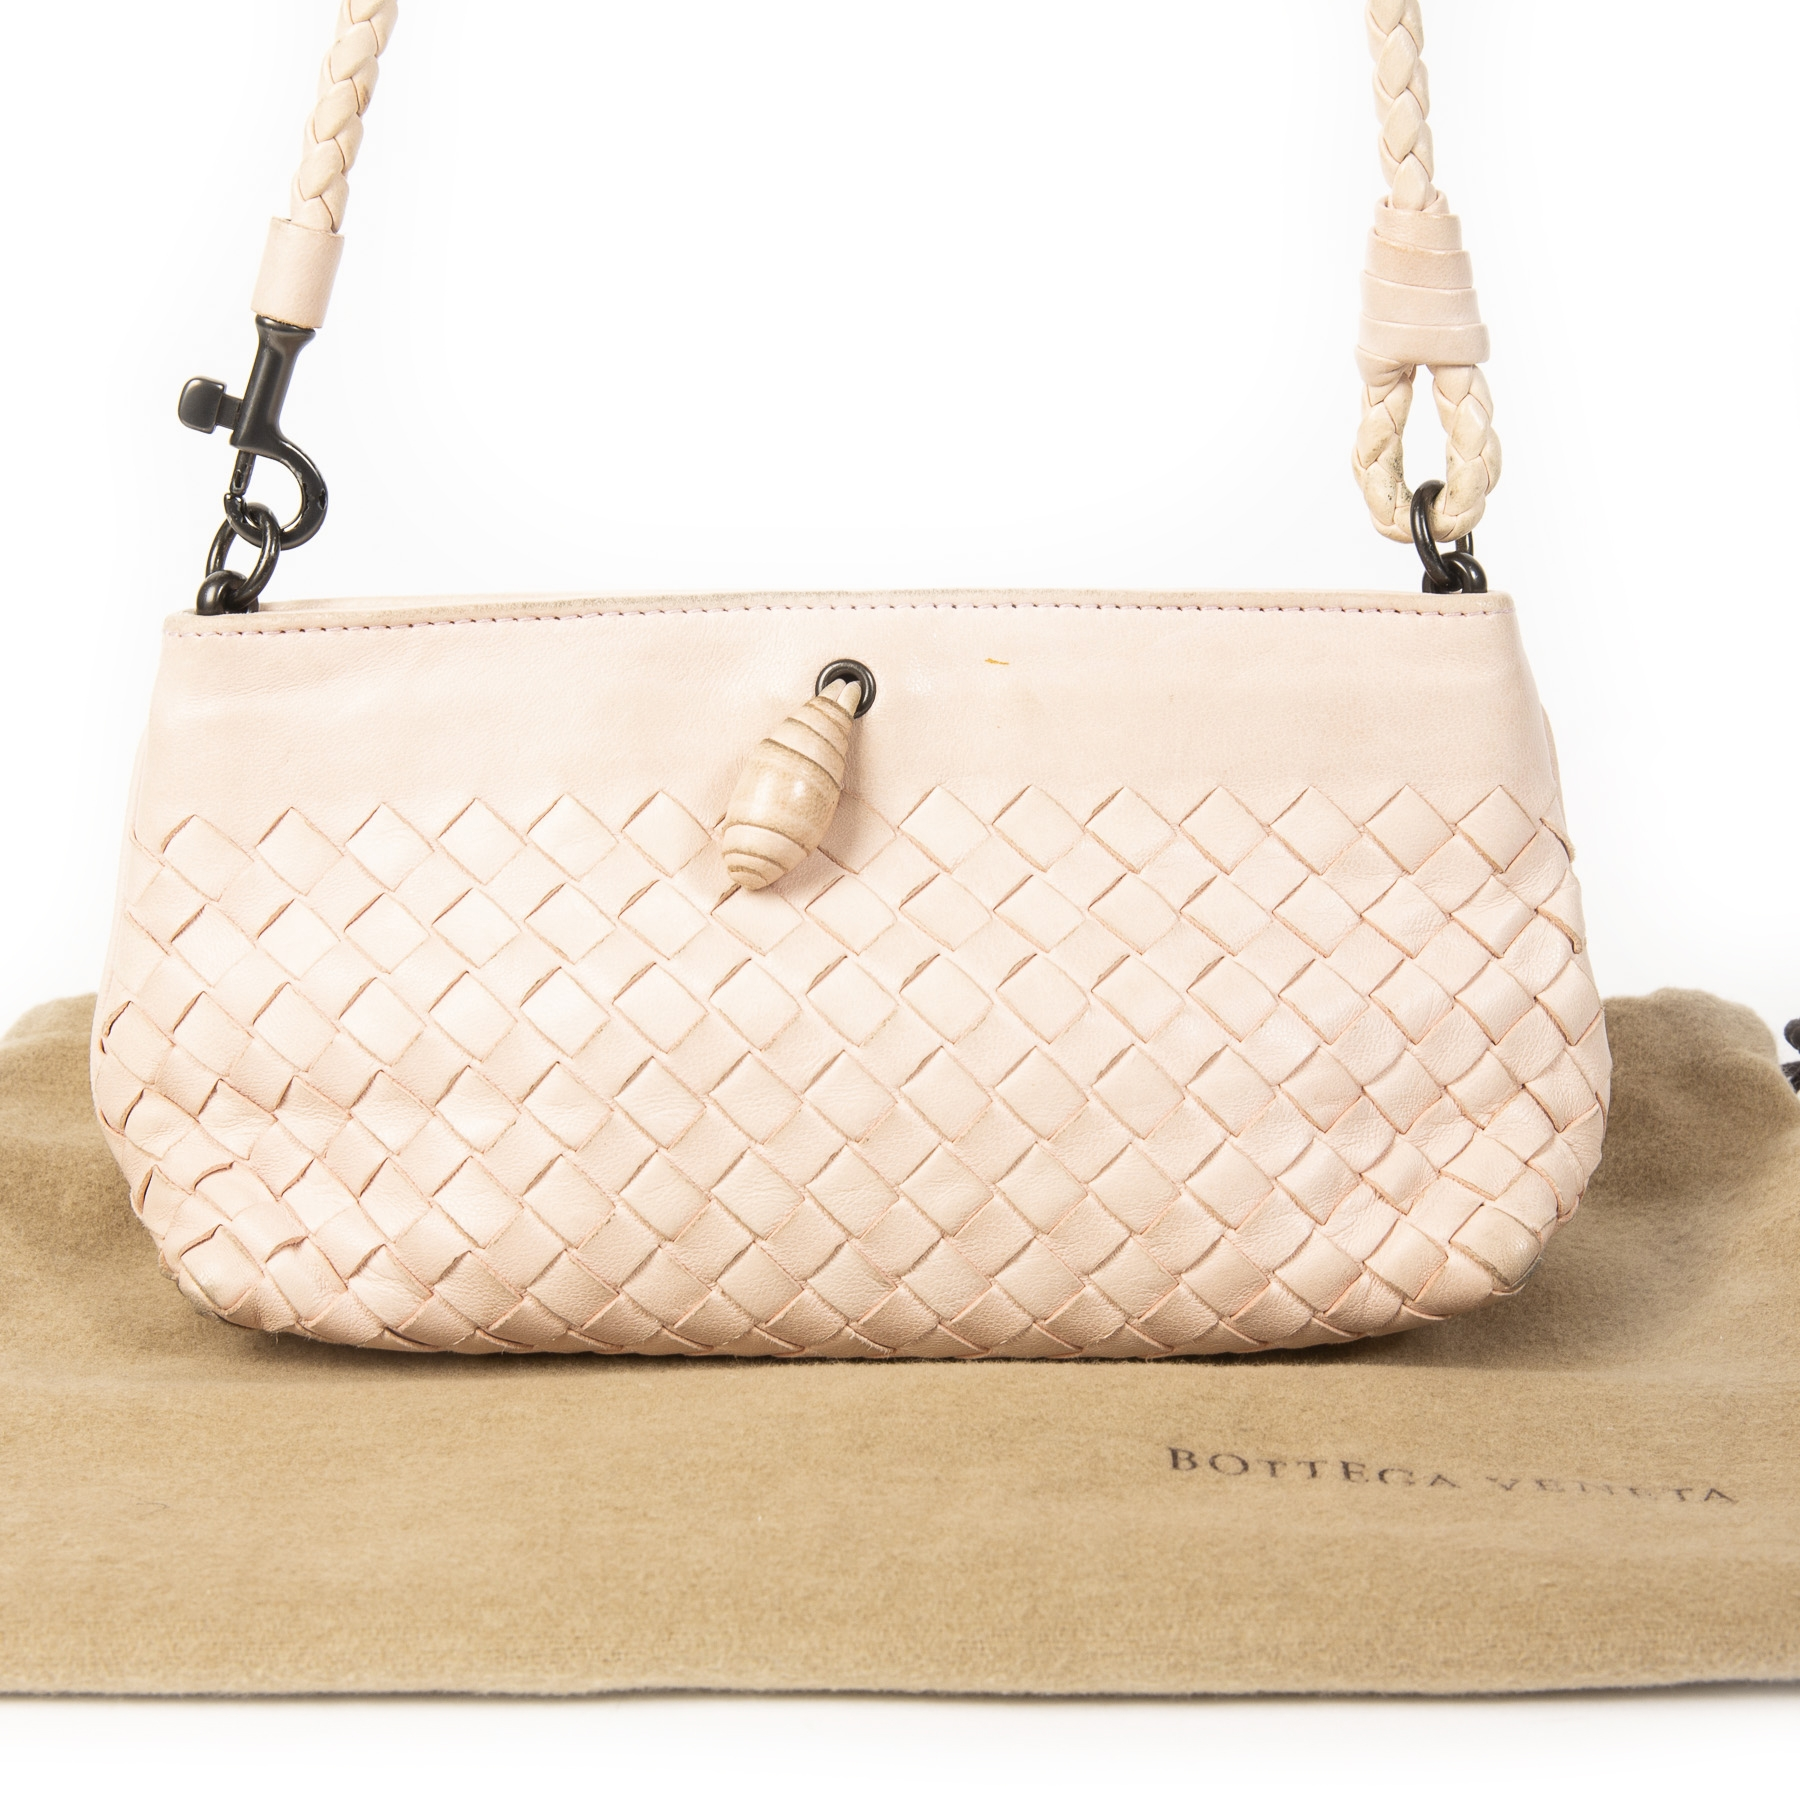 Bottega Veneta Pink Quarzo Clutch.  Buy secondhand Bottega Venetta handbags at Labellov. Safe online shopping at a fair price. Koop tweedehands Bottega Venetta handtassen bij Labellov. Veilig online winkelen voor een eerlijke prijs.